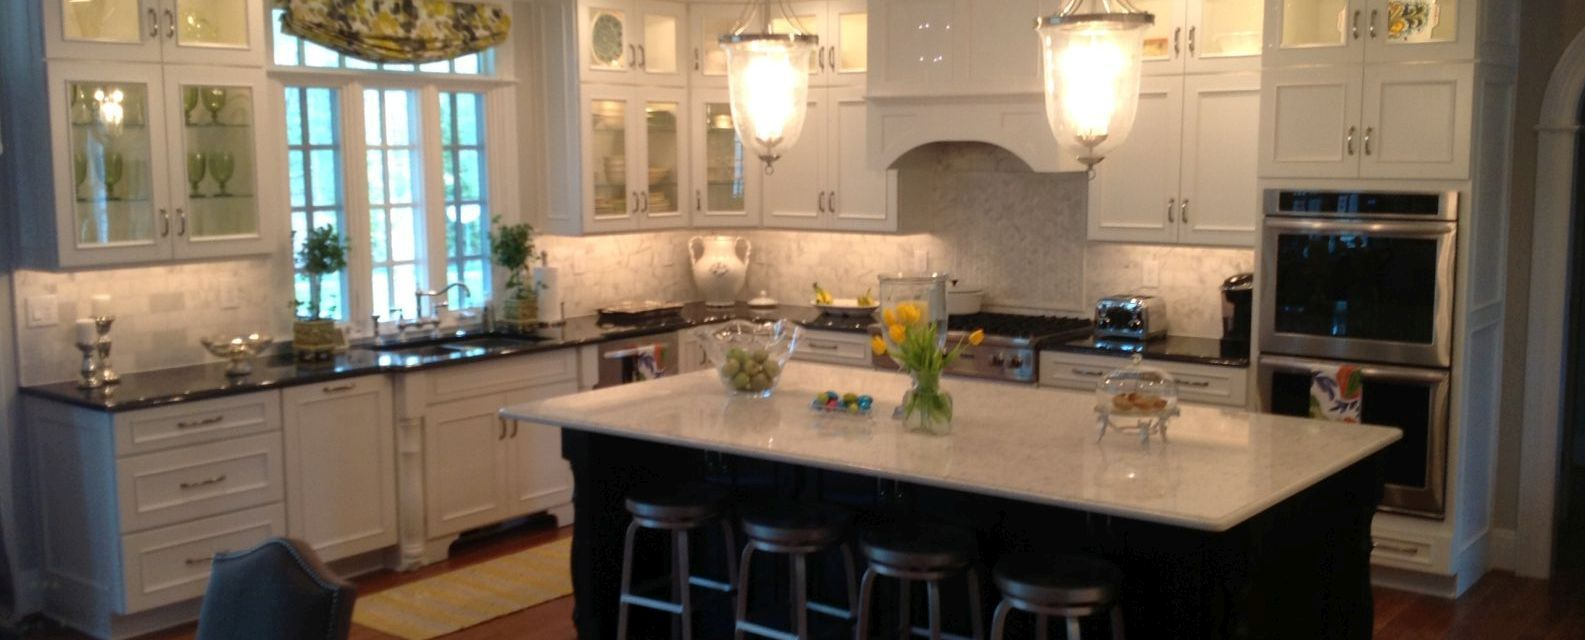 Custom Cabinets And Furniture | Richmond, VA | Nelsonu0027s Cabinetry